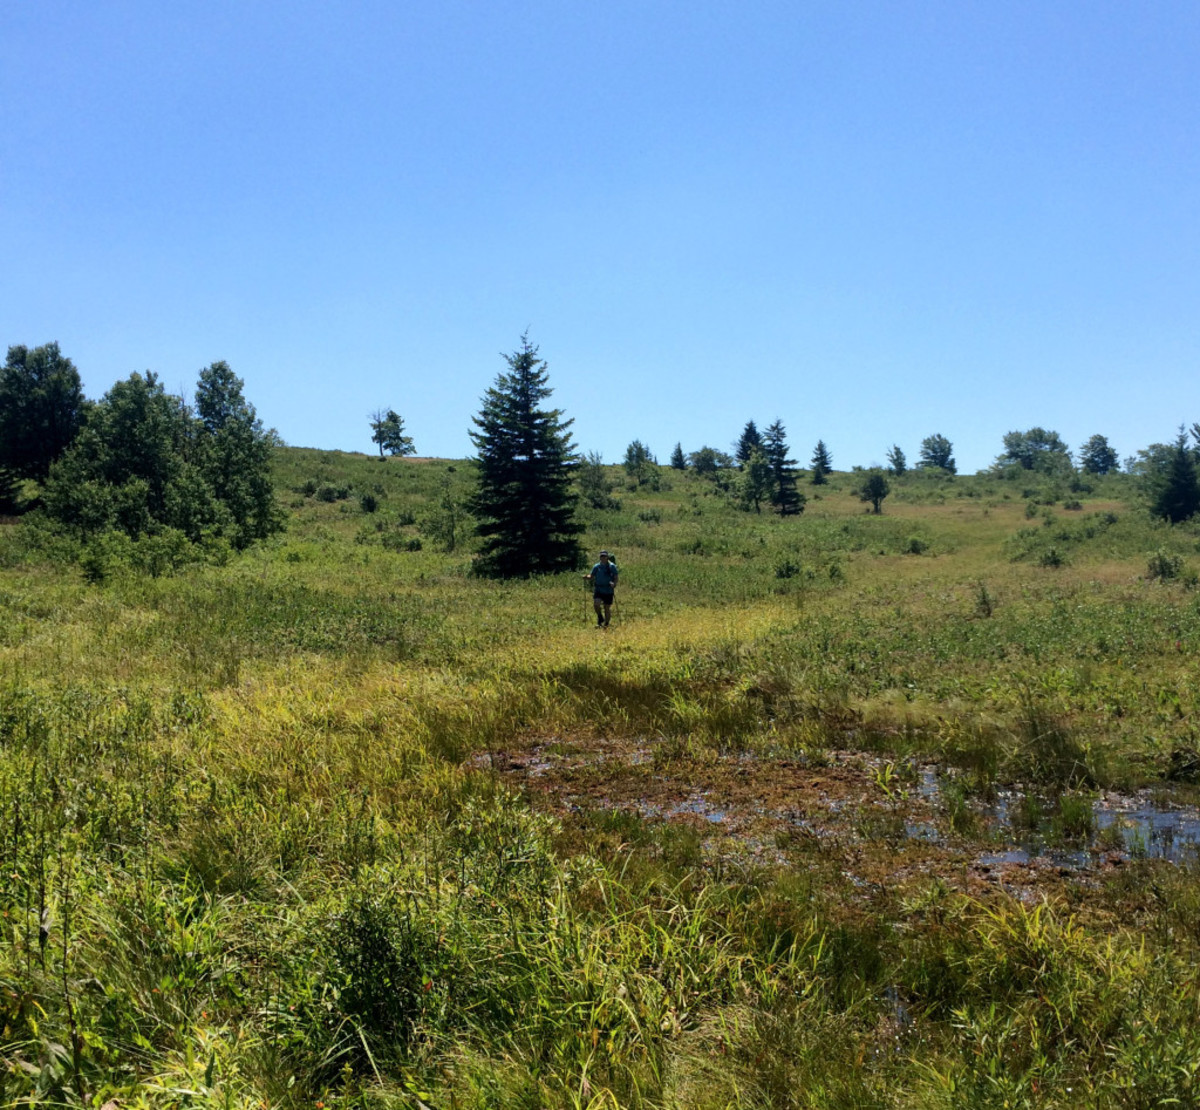 My husband, Jamison, in the distance amidst the swampland of Dobbin's Grade. Don't let the grass fool you, it's mostly all boot deep with water at a minimum.